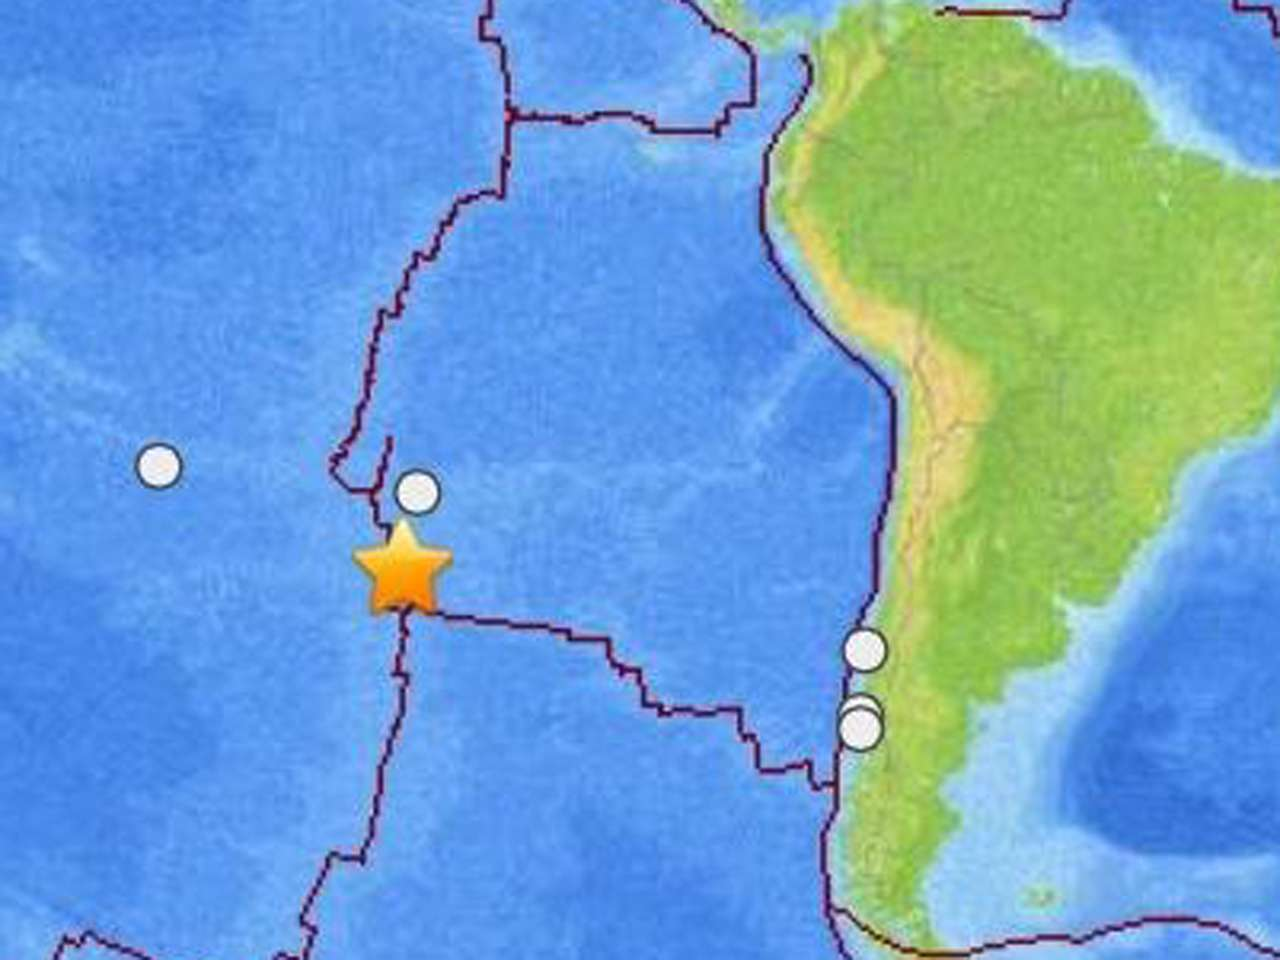 El sismo no reúne las condiciones para generar un tsunami en las costas chilenas. Foto: USGS